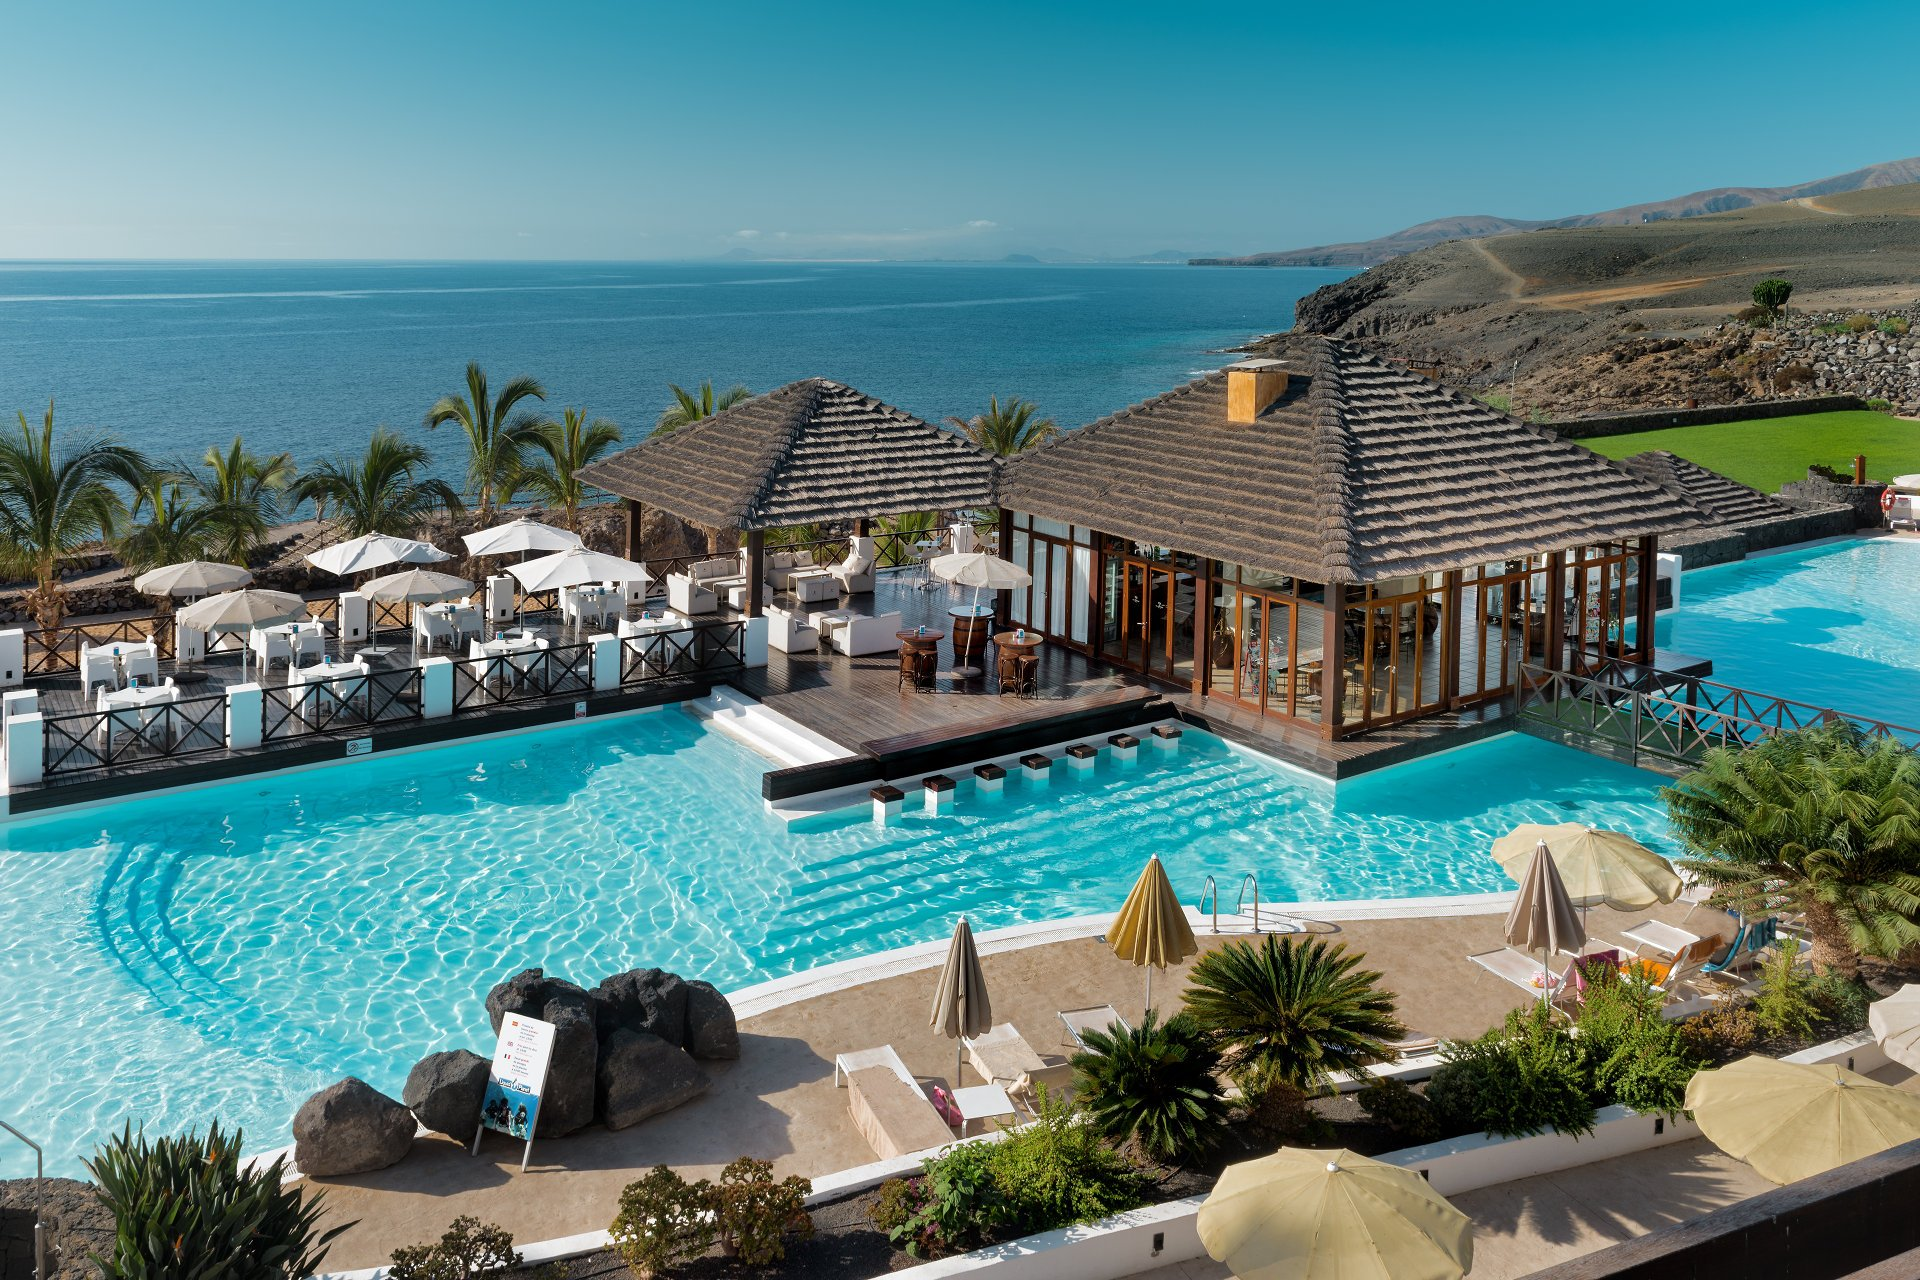 Swimming Pool, beach Bar and Sunbathing Terrace at Hesperia Lanzarote Hotel, Puerto Calero, Lanzarote